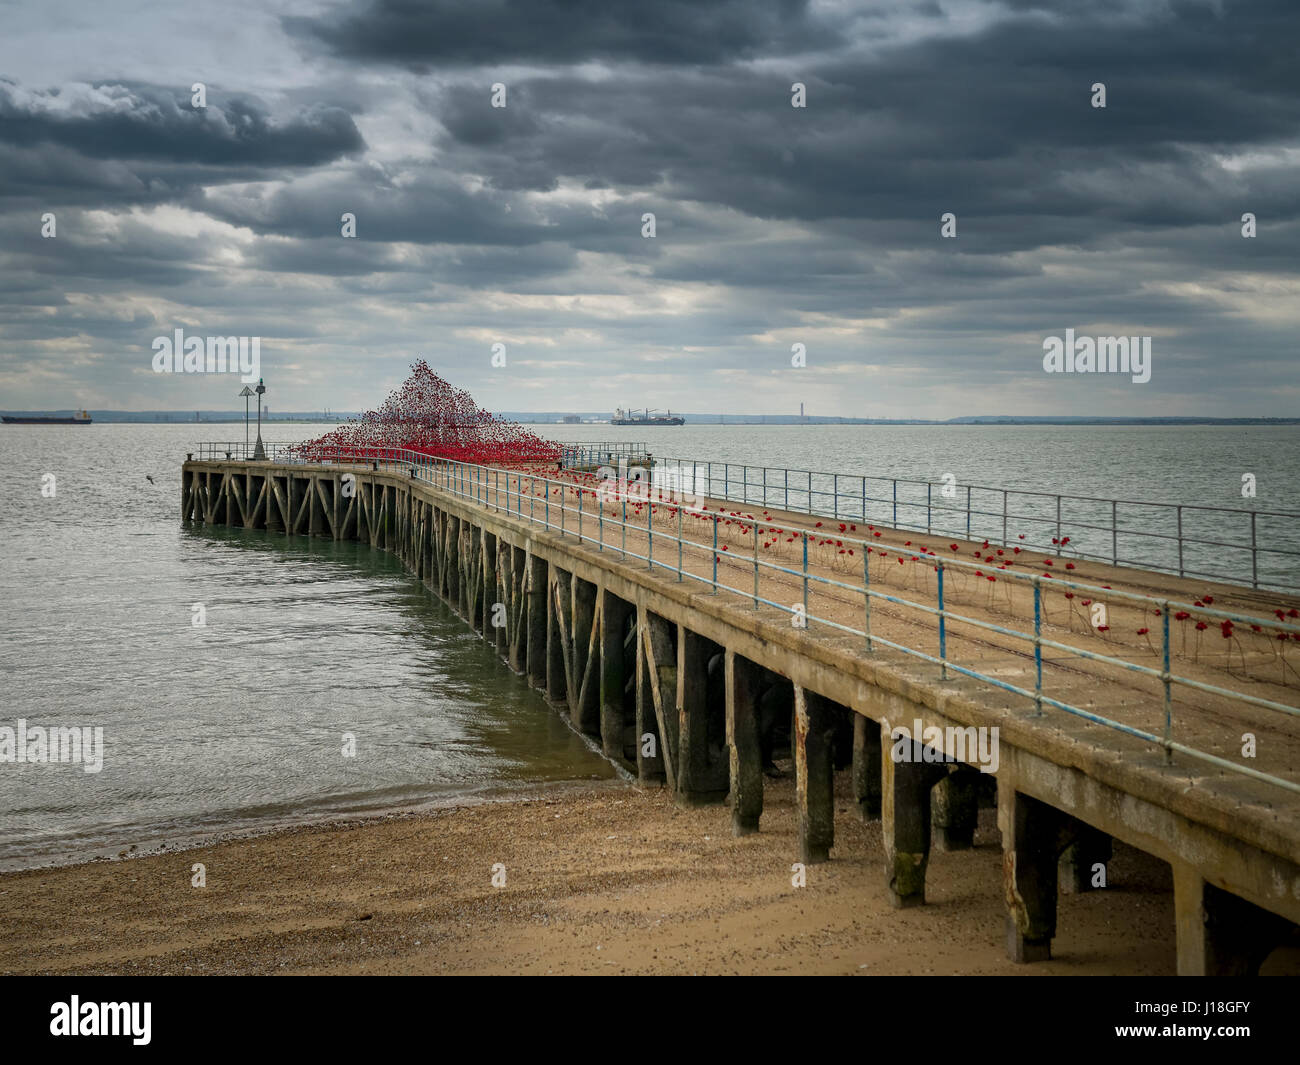 Poppies Wave is an art installation by artist Paul Cummins on display at Barge Pier in Gunners Park, Shoeburyness, - Stock Image